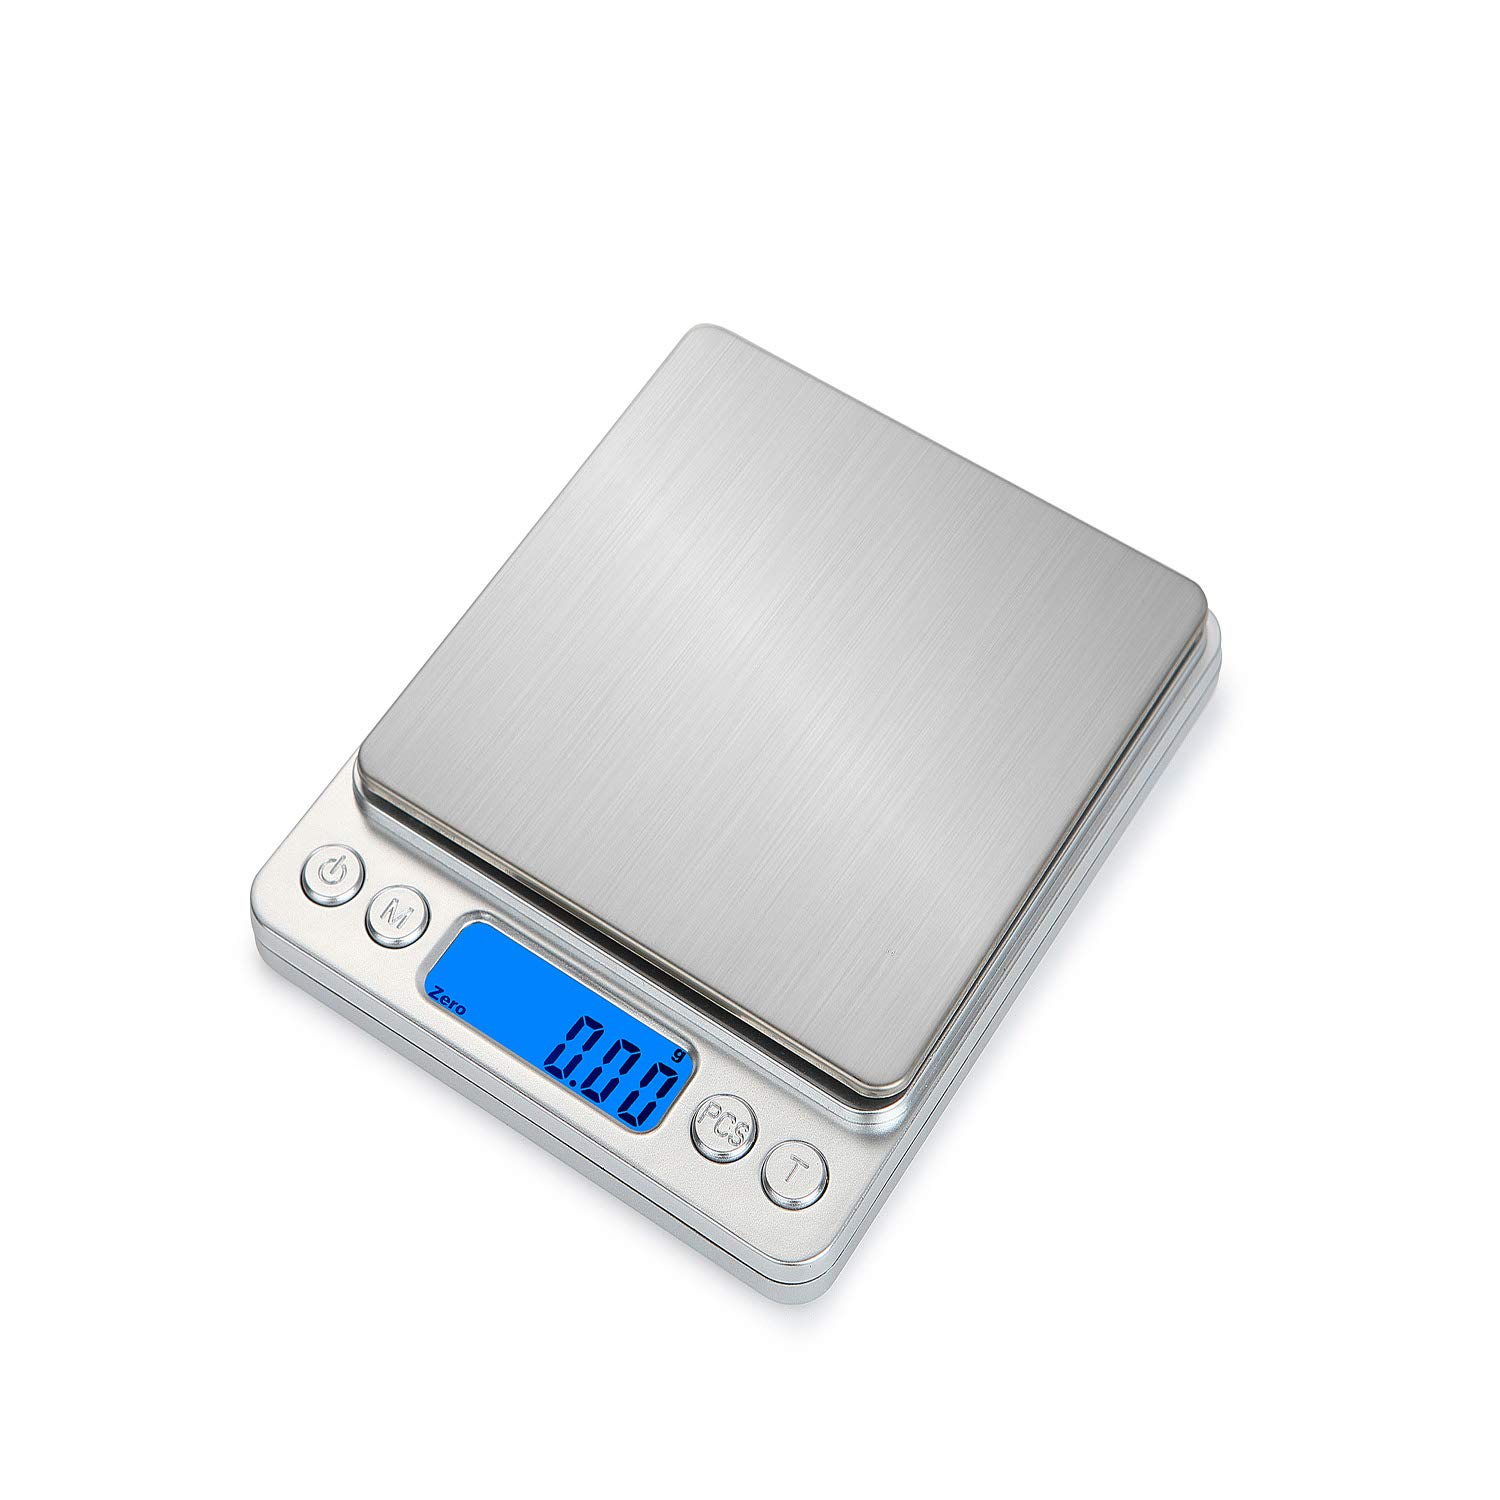 ToGames HT-I200 Portable Kitchen Digital Scale Stainless Steel Electronic LCD Display Food Scales Jewelry Scale 3000g x 0.1g by ToGames